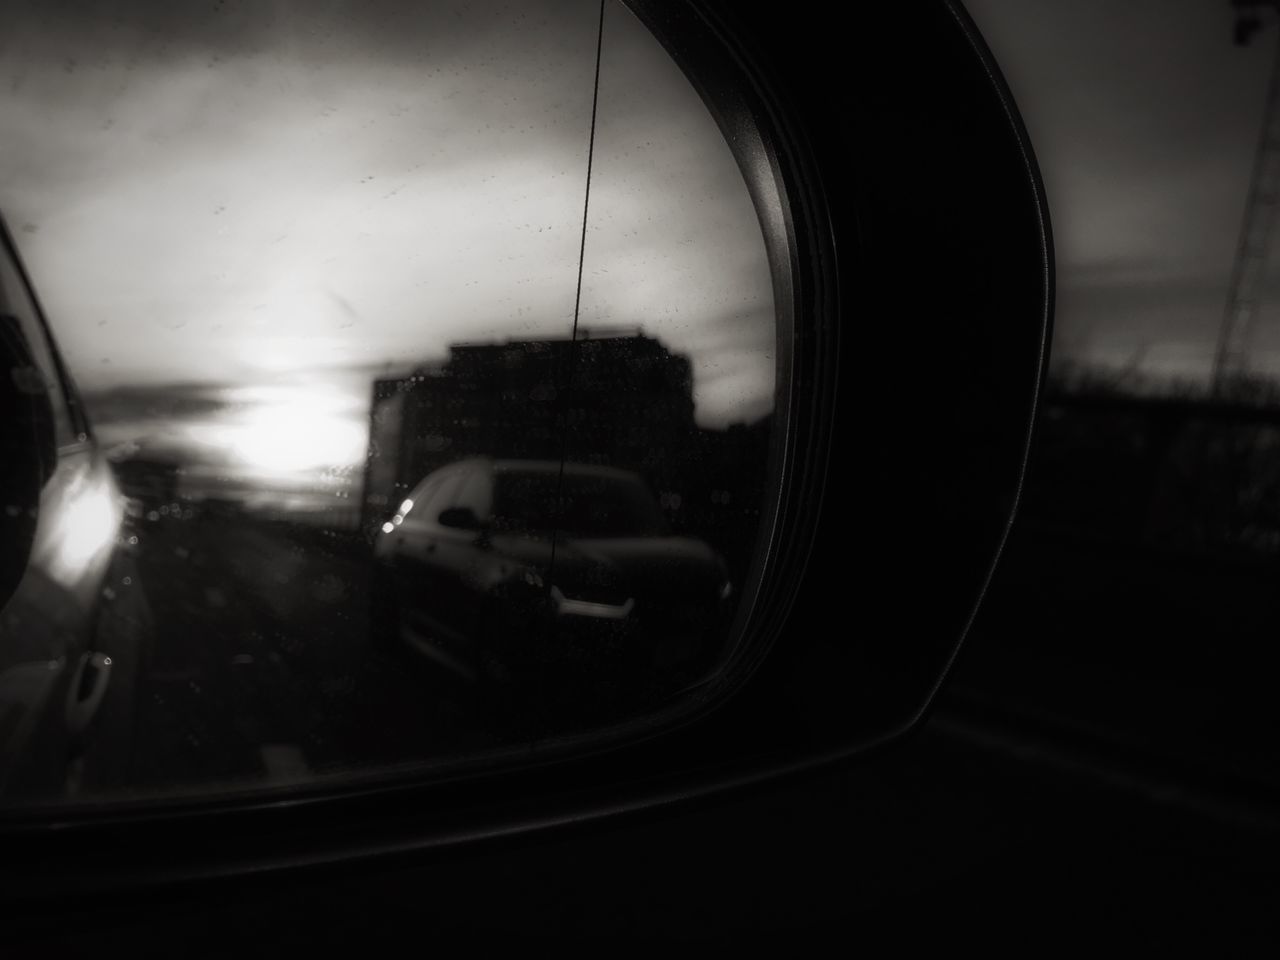 Car Reflection Side-view Mirror Close-up Vehicle Mirror No People Creative Photography Street Photography Fresh On Eyeem  EyeEm Best Shots - The Streets The Week Of Eyeem EyeEm Best Shots EyeEm Bnw EyeEm Best Shots - Black + White Black And White Window Day Silhouette Dark Blurred Motion